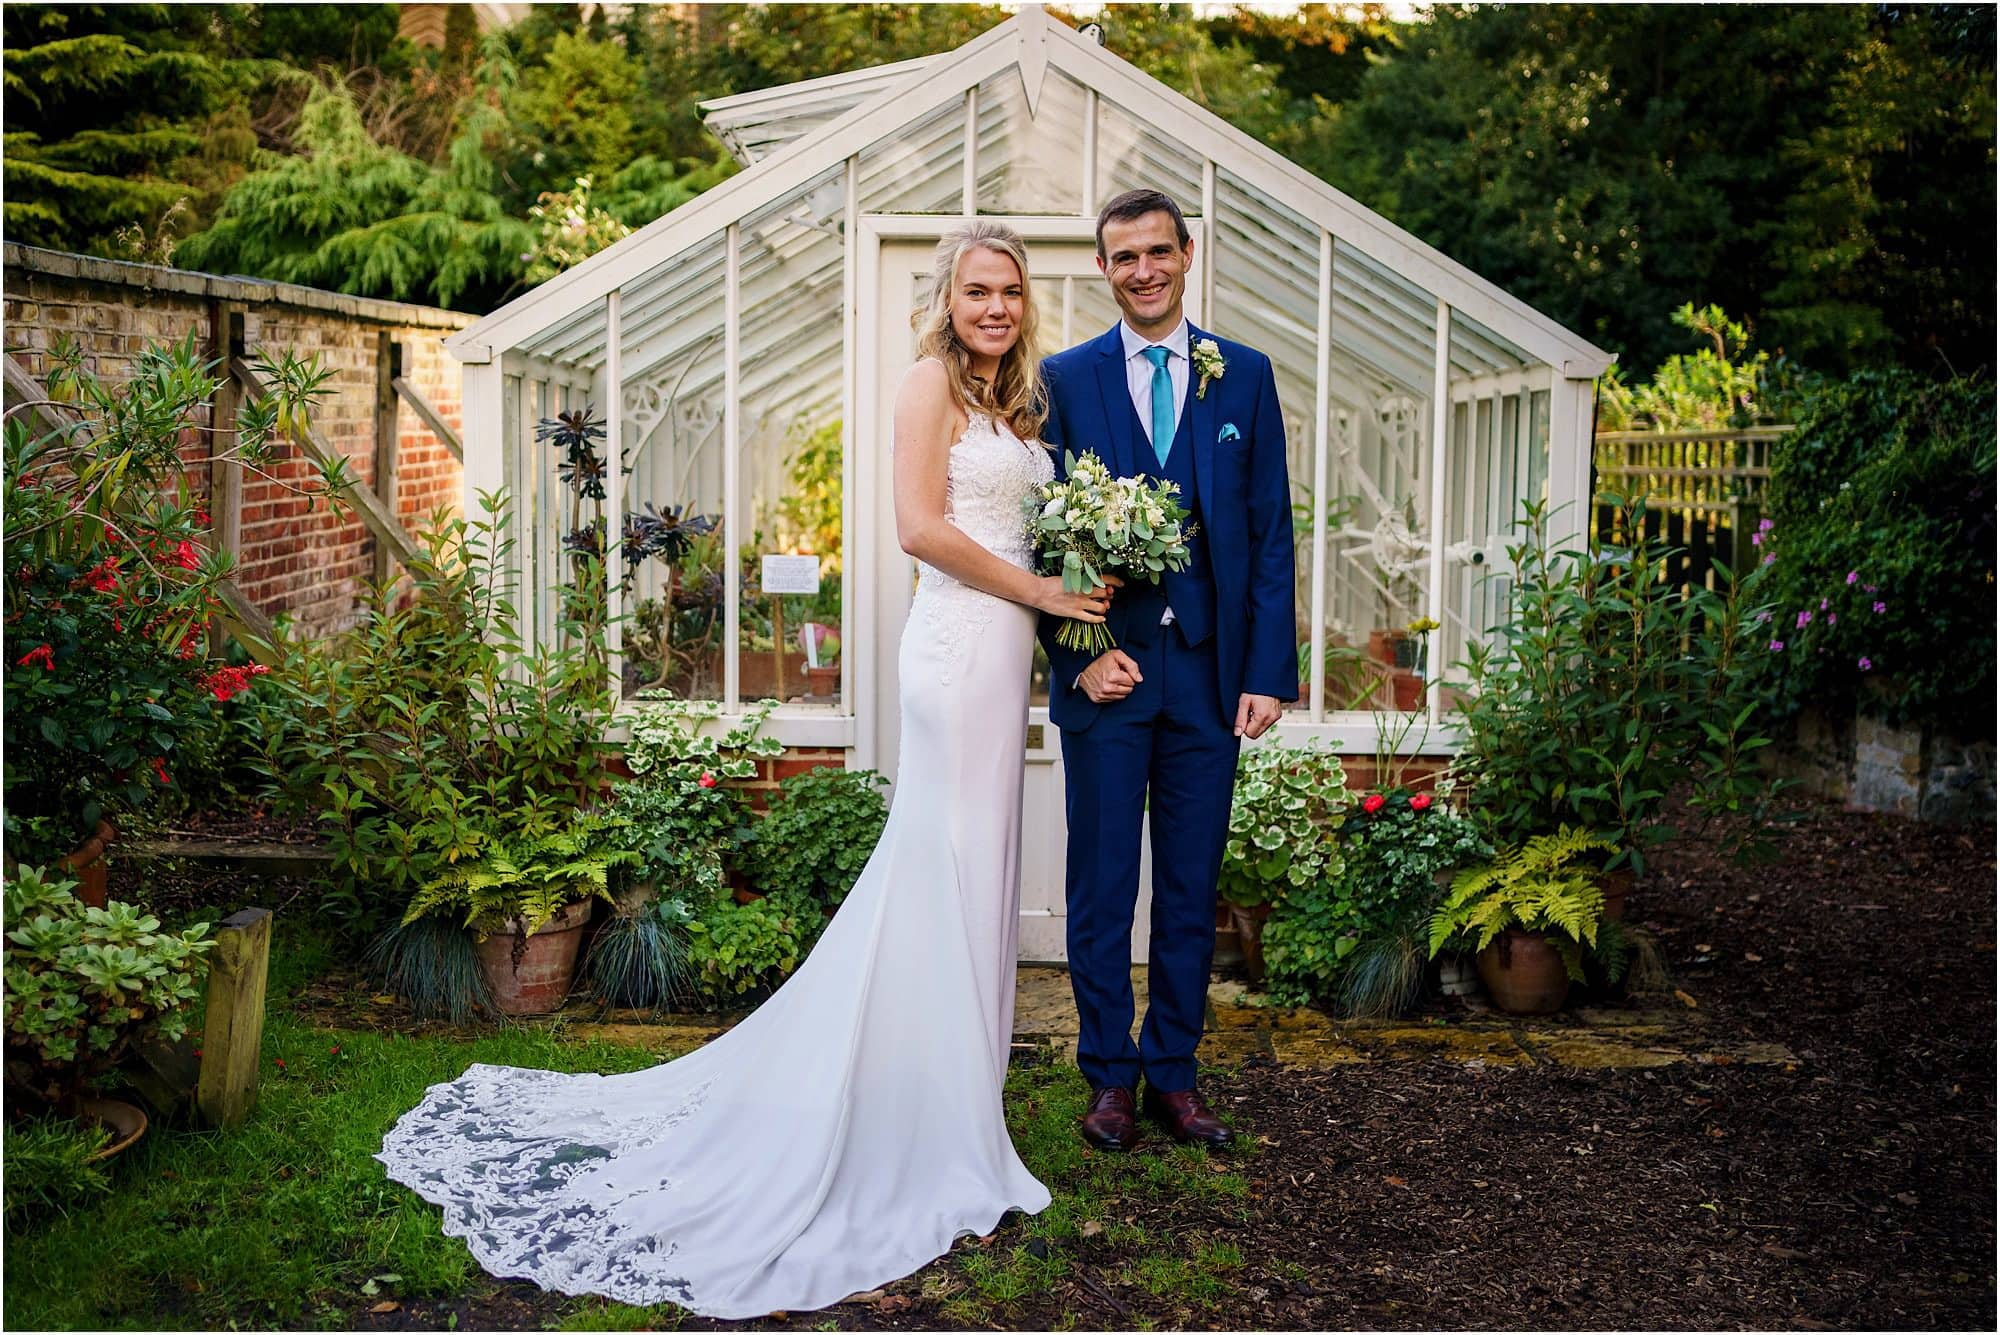 Wedding photo at the greenhouse